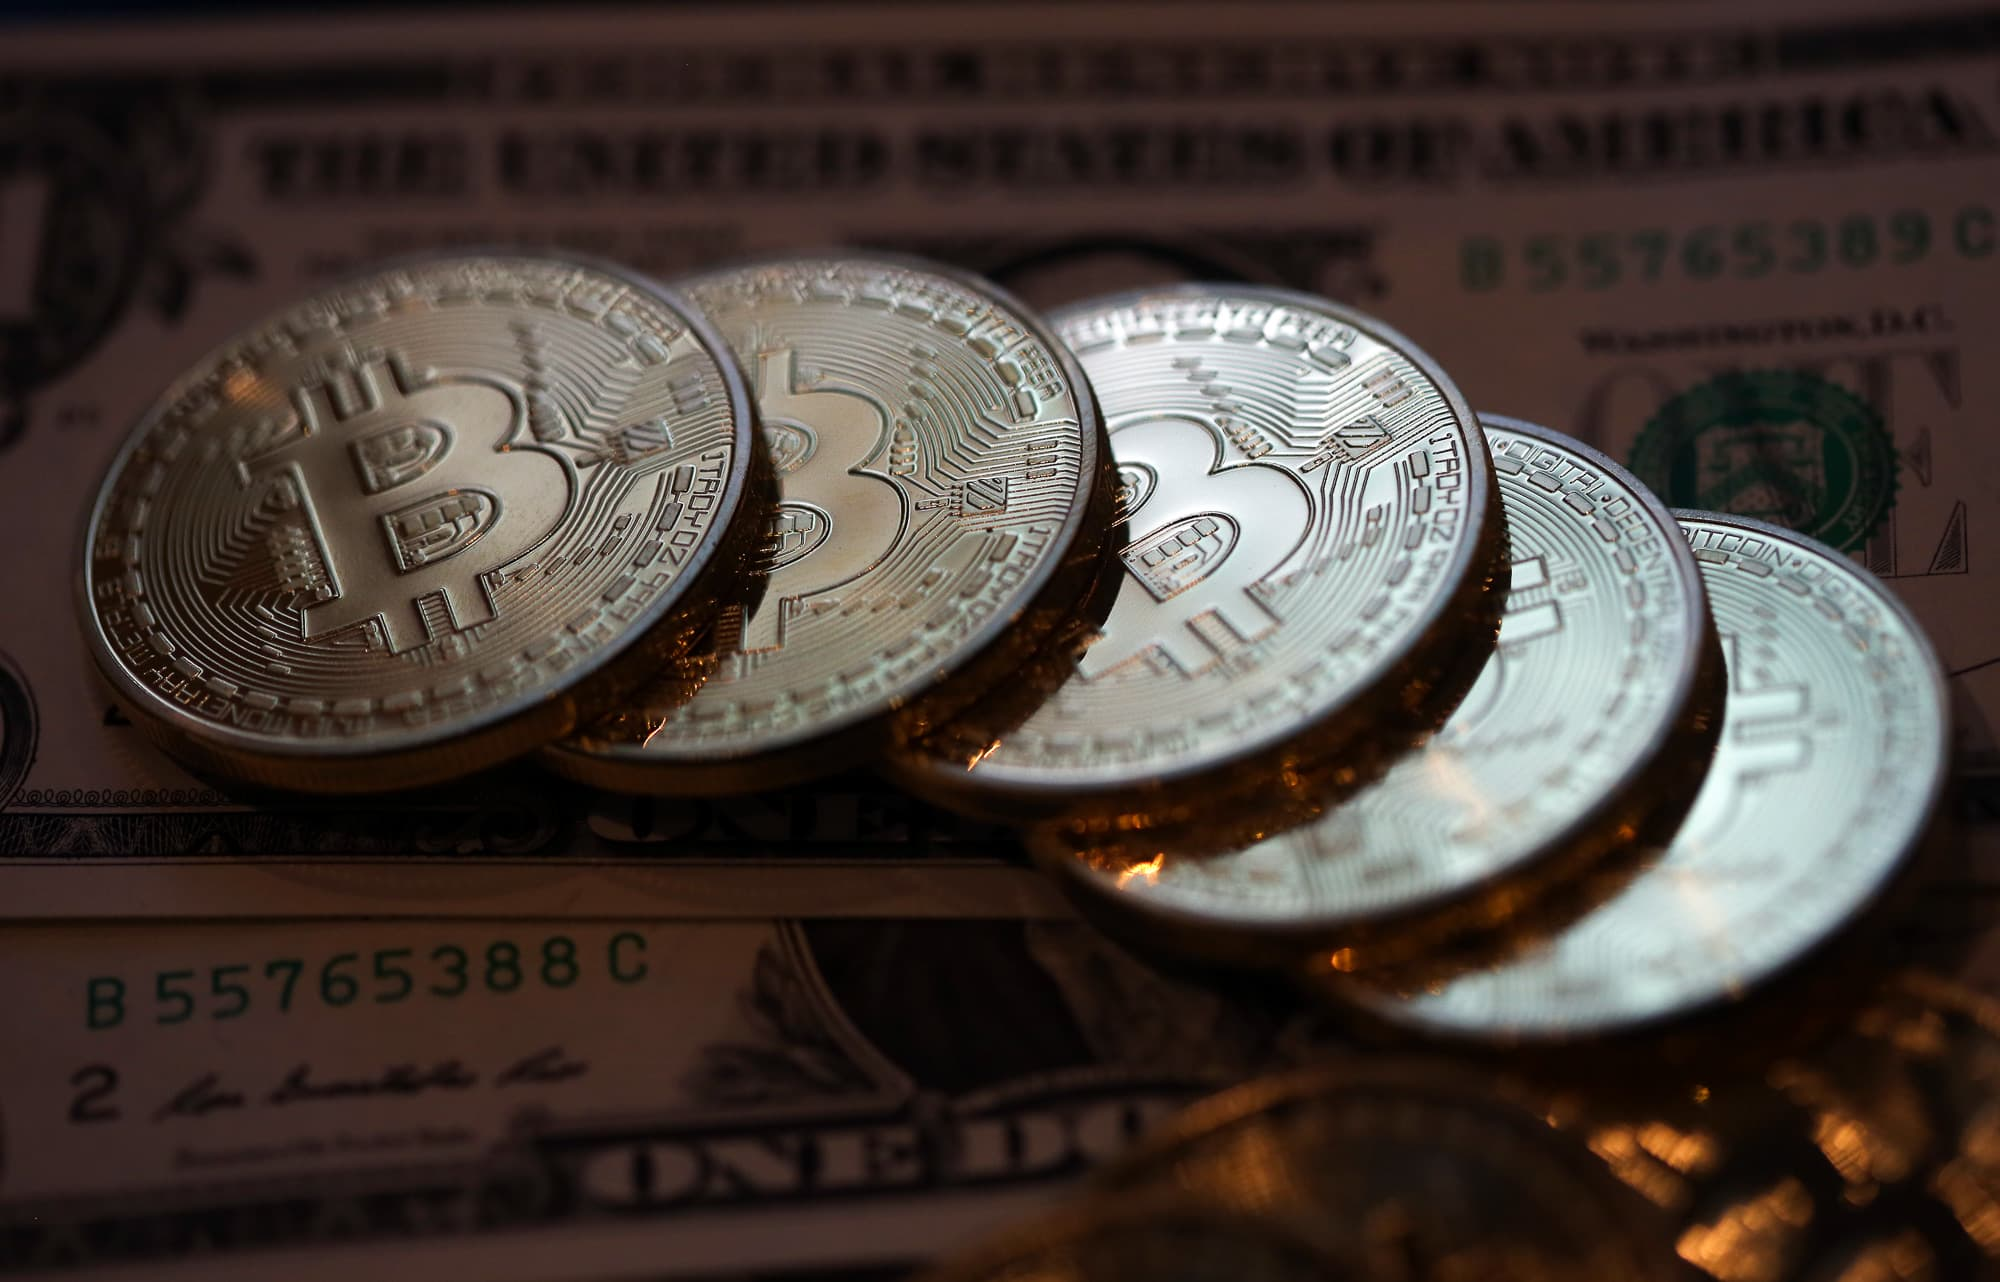 http://cashinbitcoins.com/2016/07/27/how-to-sell-bitcoin-for-usd-paypal/